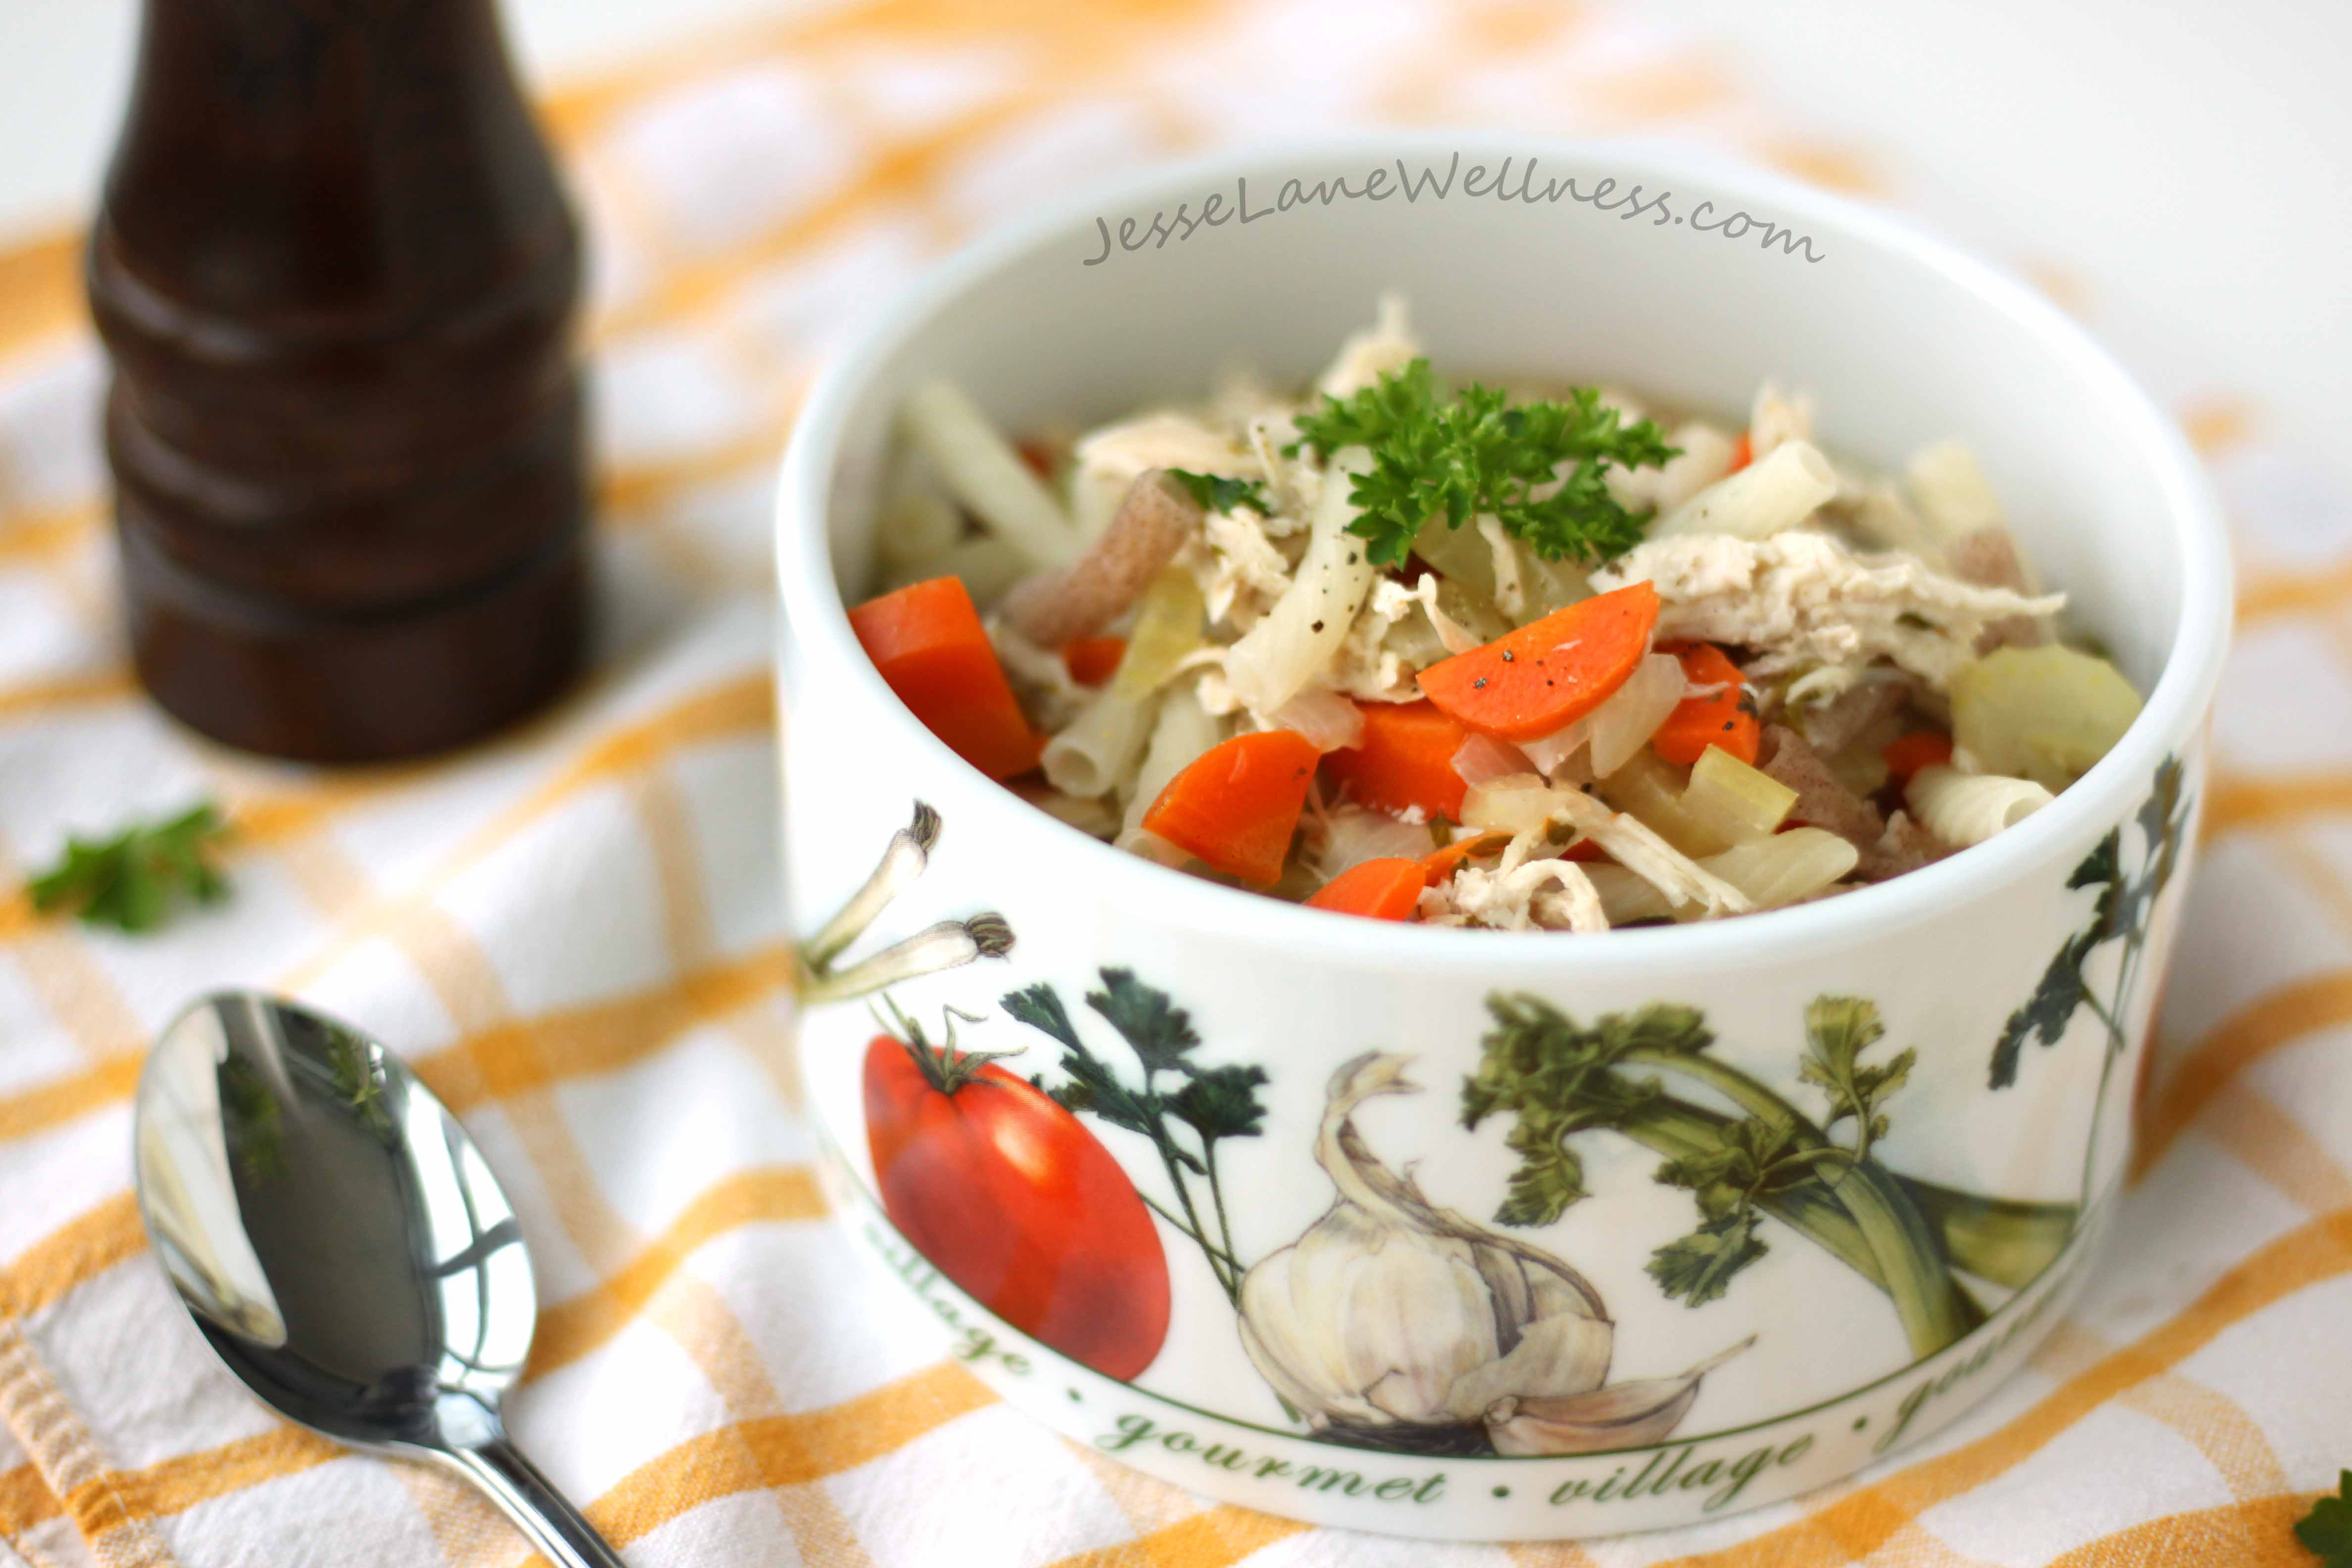 Healthy Chicken Noodle Soup  Healthy Chicken Noodle Soup Recipe by Jesse Lane Wellness